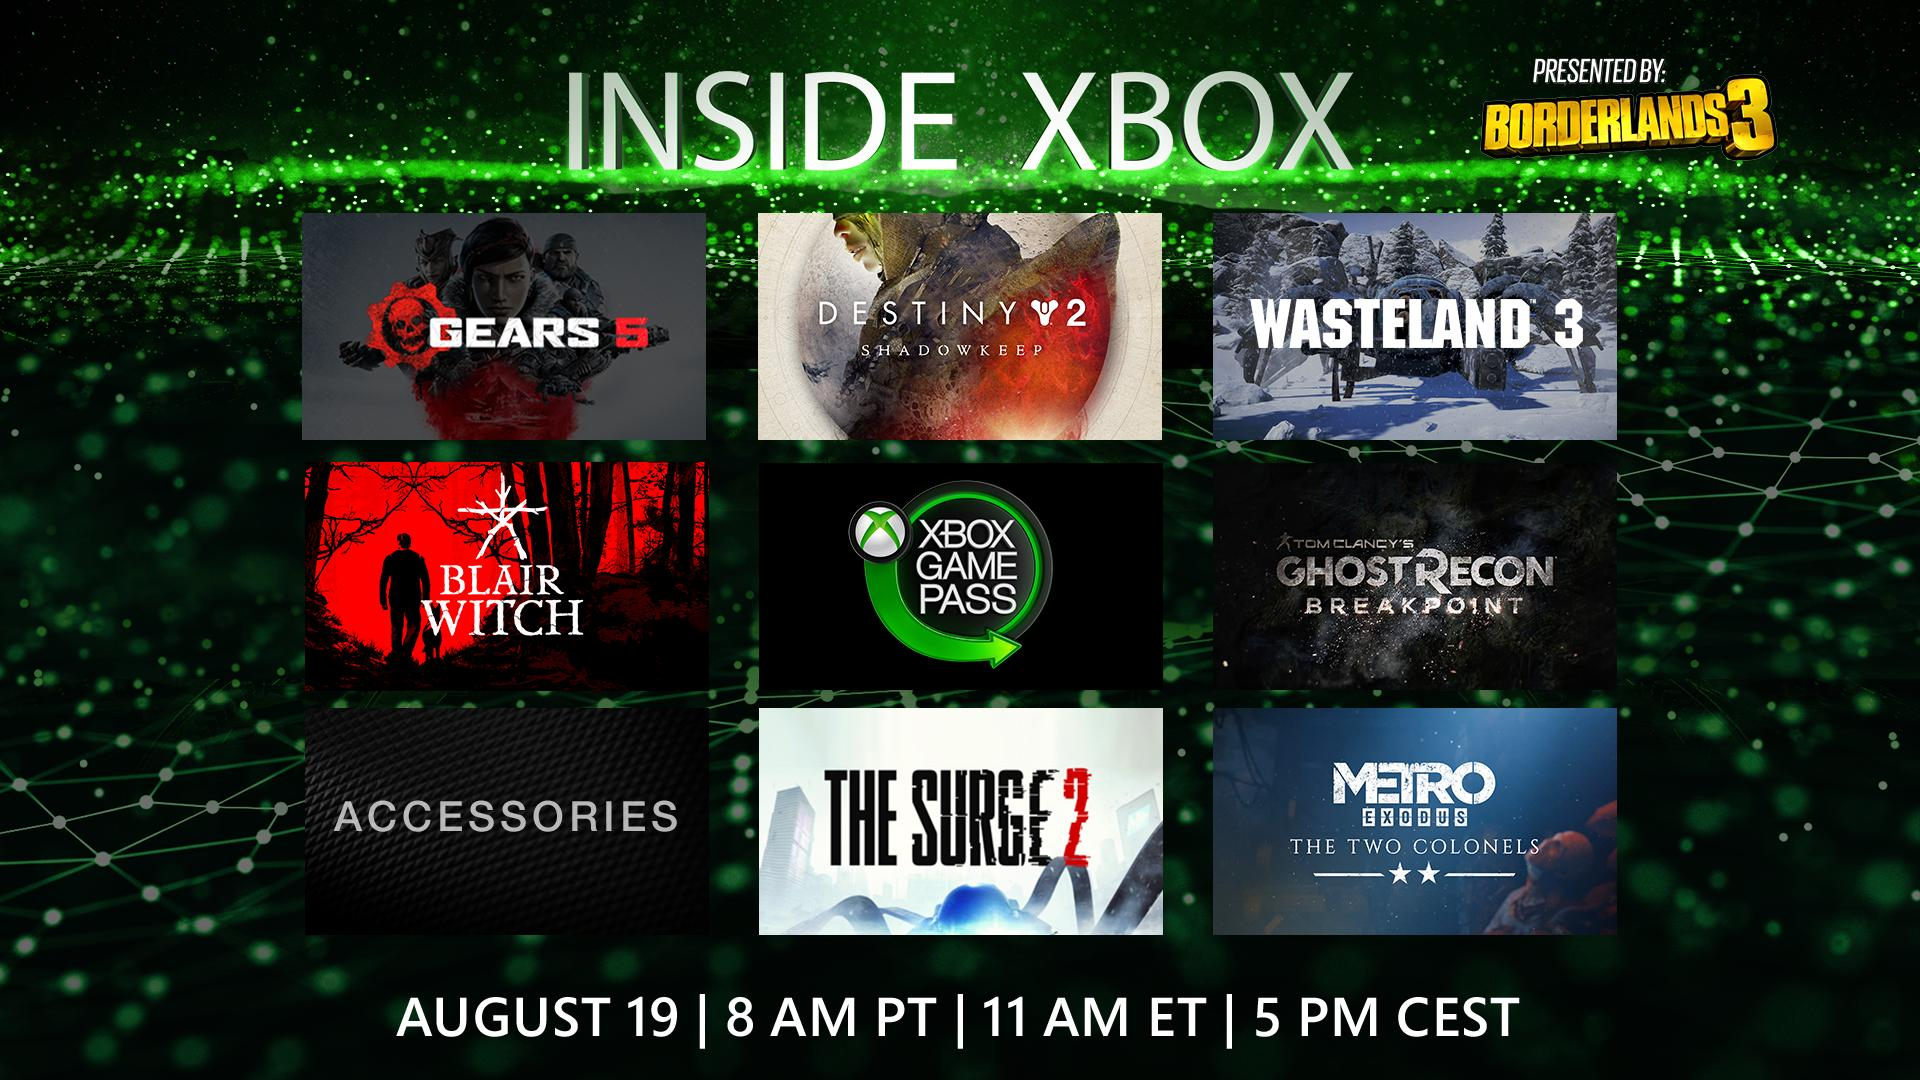 Inside Xbox Schedule featuring Gears 5, Destiny 2 Shadowkeep, Wasteland 3, Blair Witch, Xbox Game Pass, Tom Clancy's Ghost Recon Breakout, Accessories, The Surge 2, and Metro Exodus. Text Reads: August 19, 8 AM PT, 11AM ET, 5PM CEST.